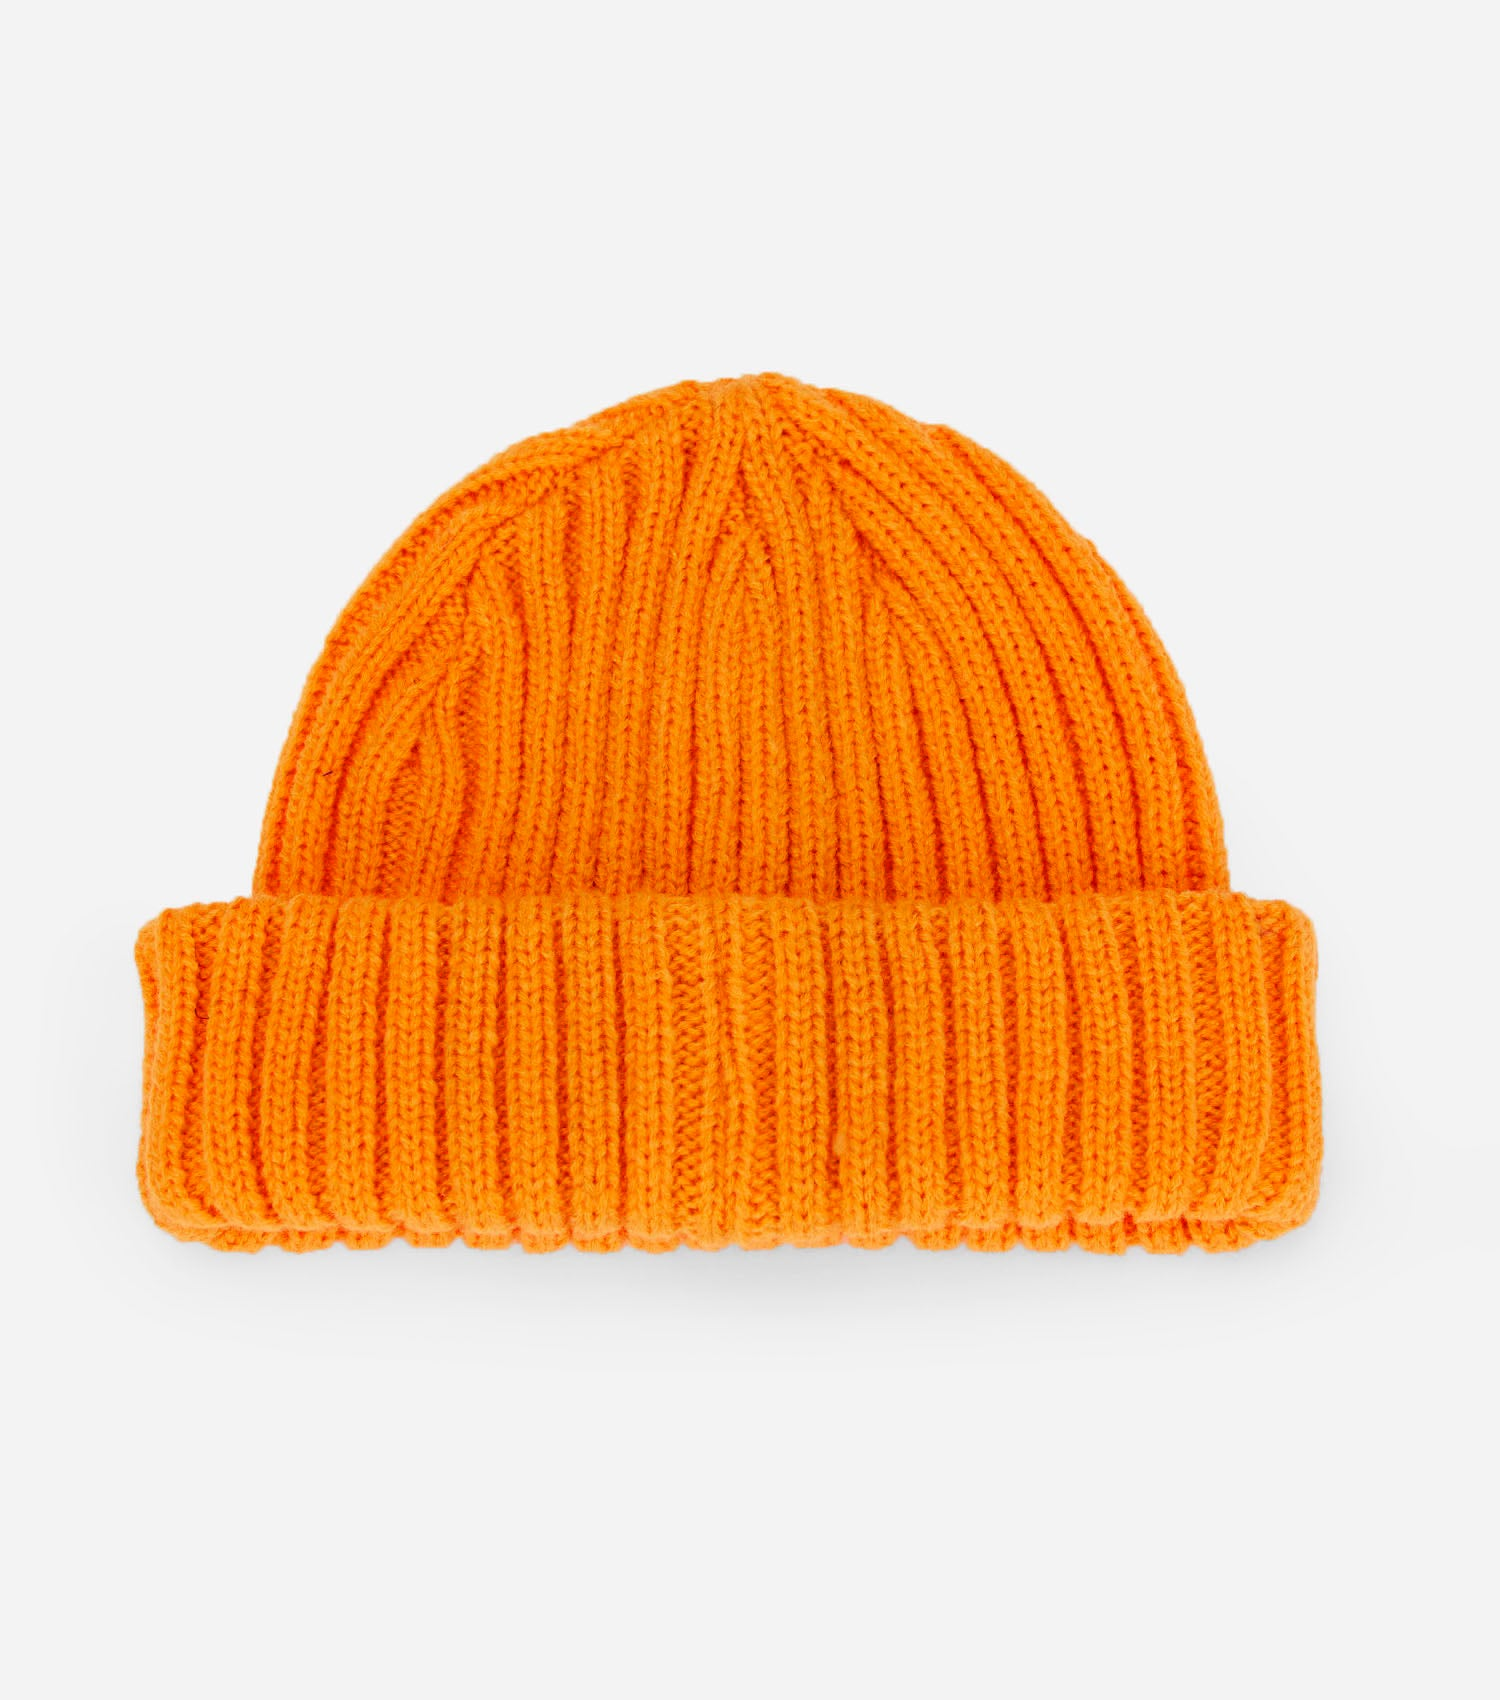 NICCE KARLO BEANIE HAT | FLAME ORANGE